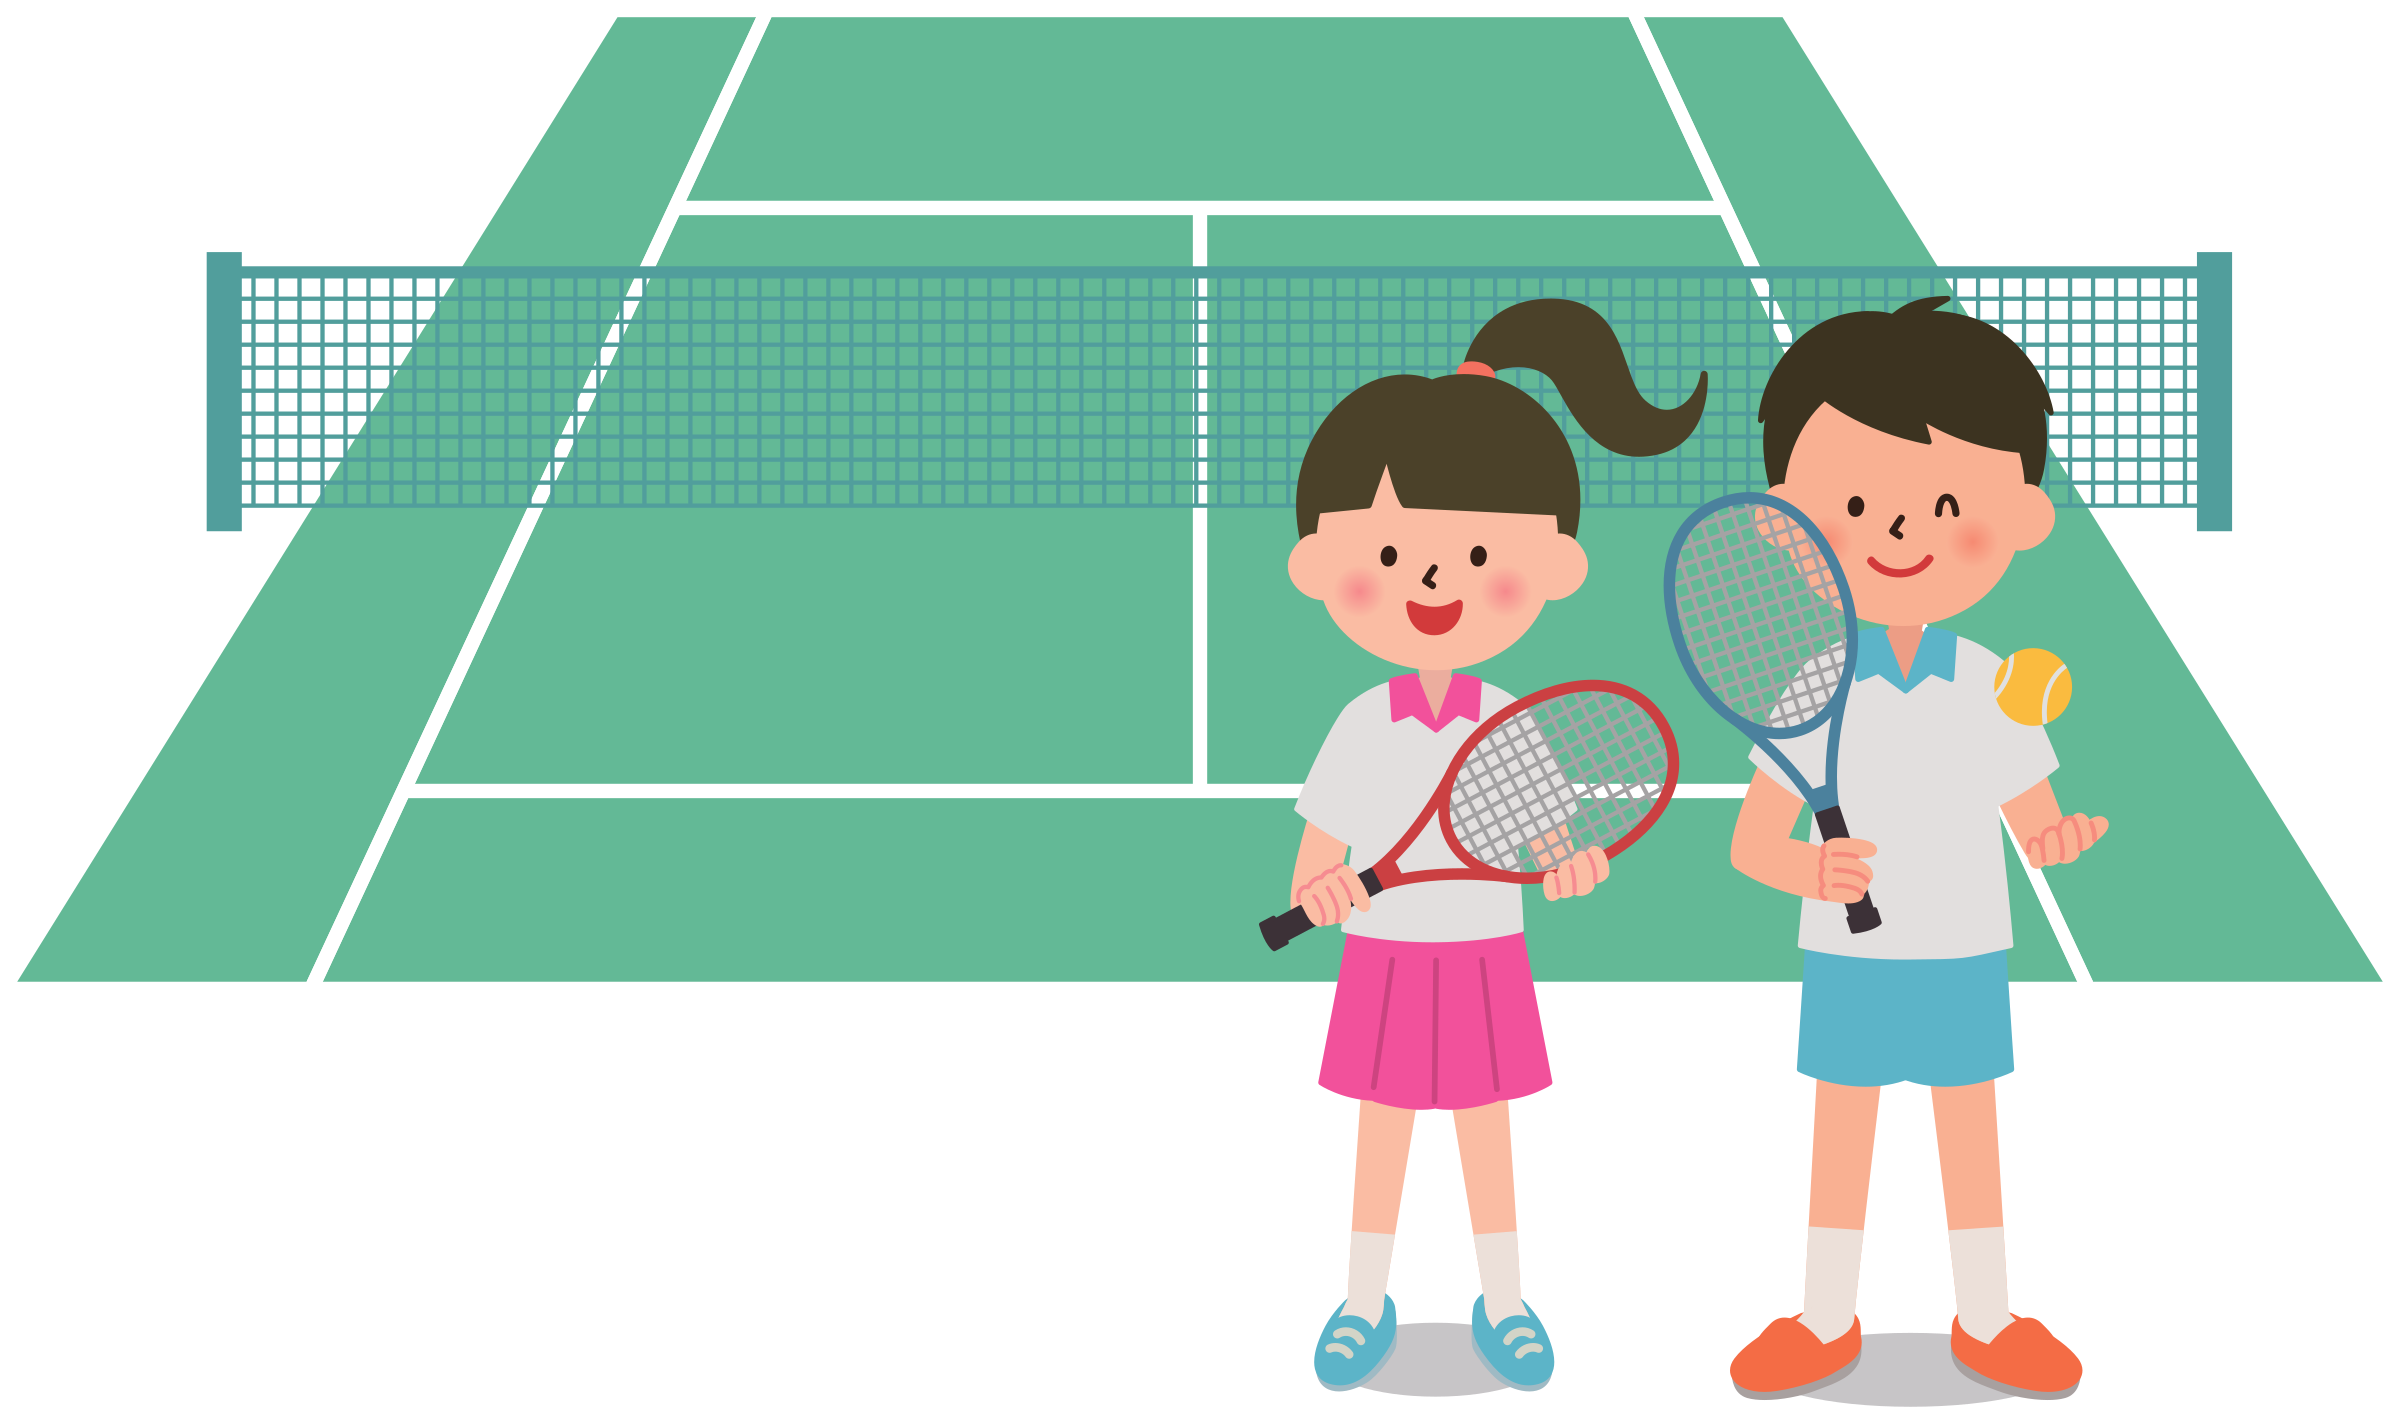 svg transparent stock Players big image png. Playing tennis clipart